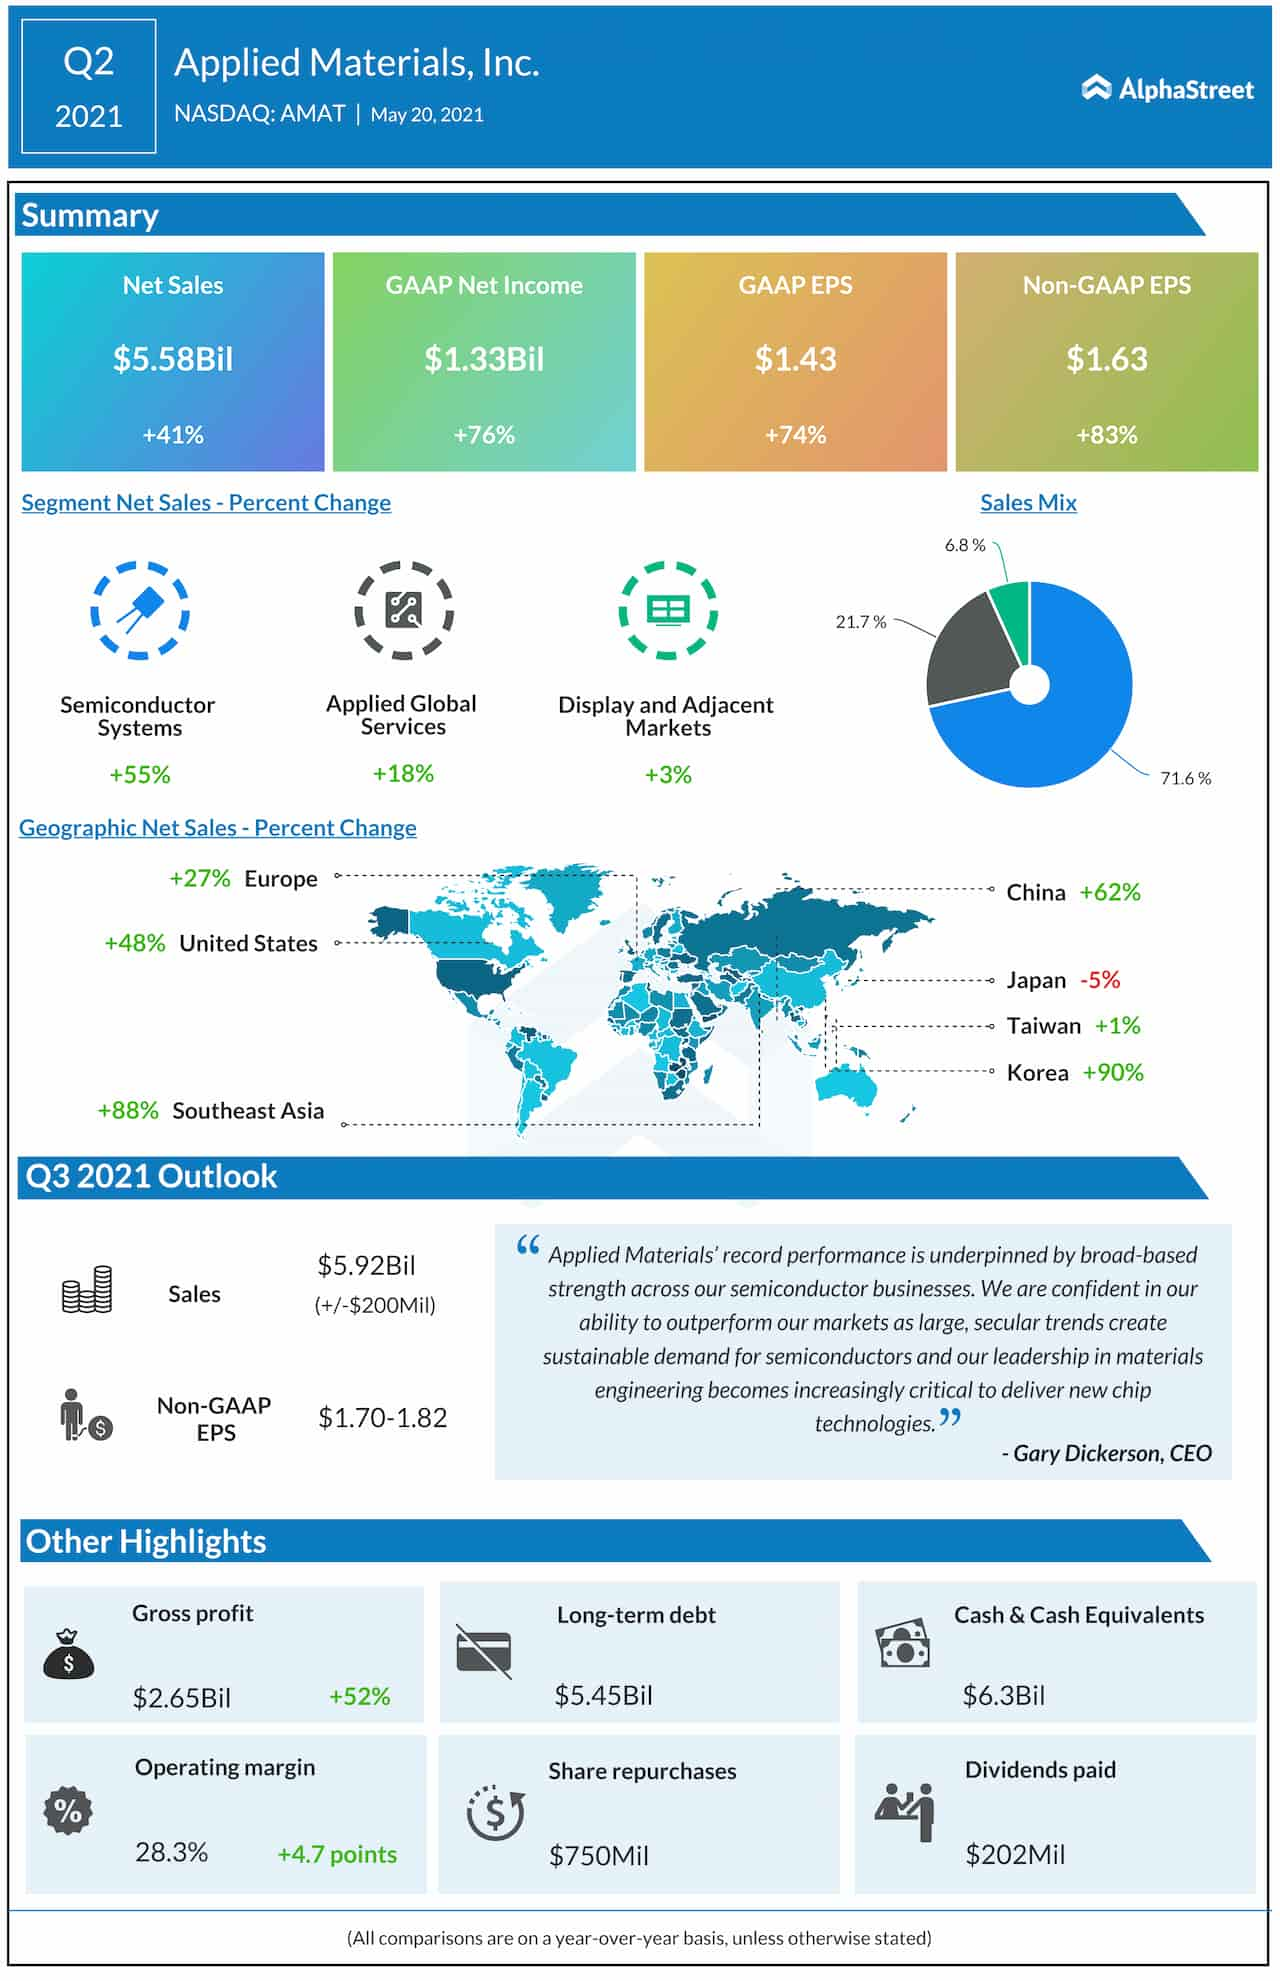 Applied Materials Q2 2021 earnings infographic